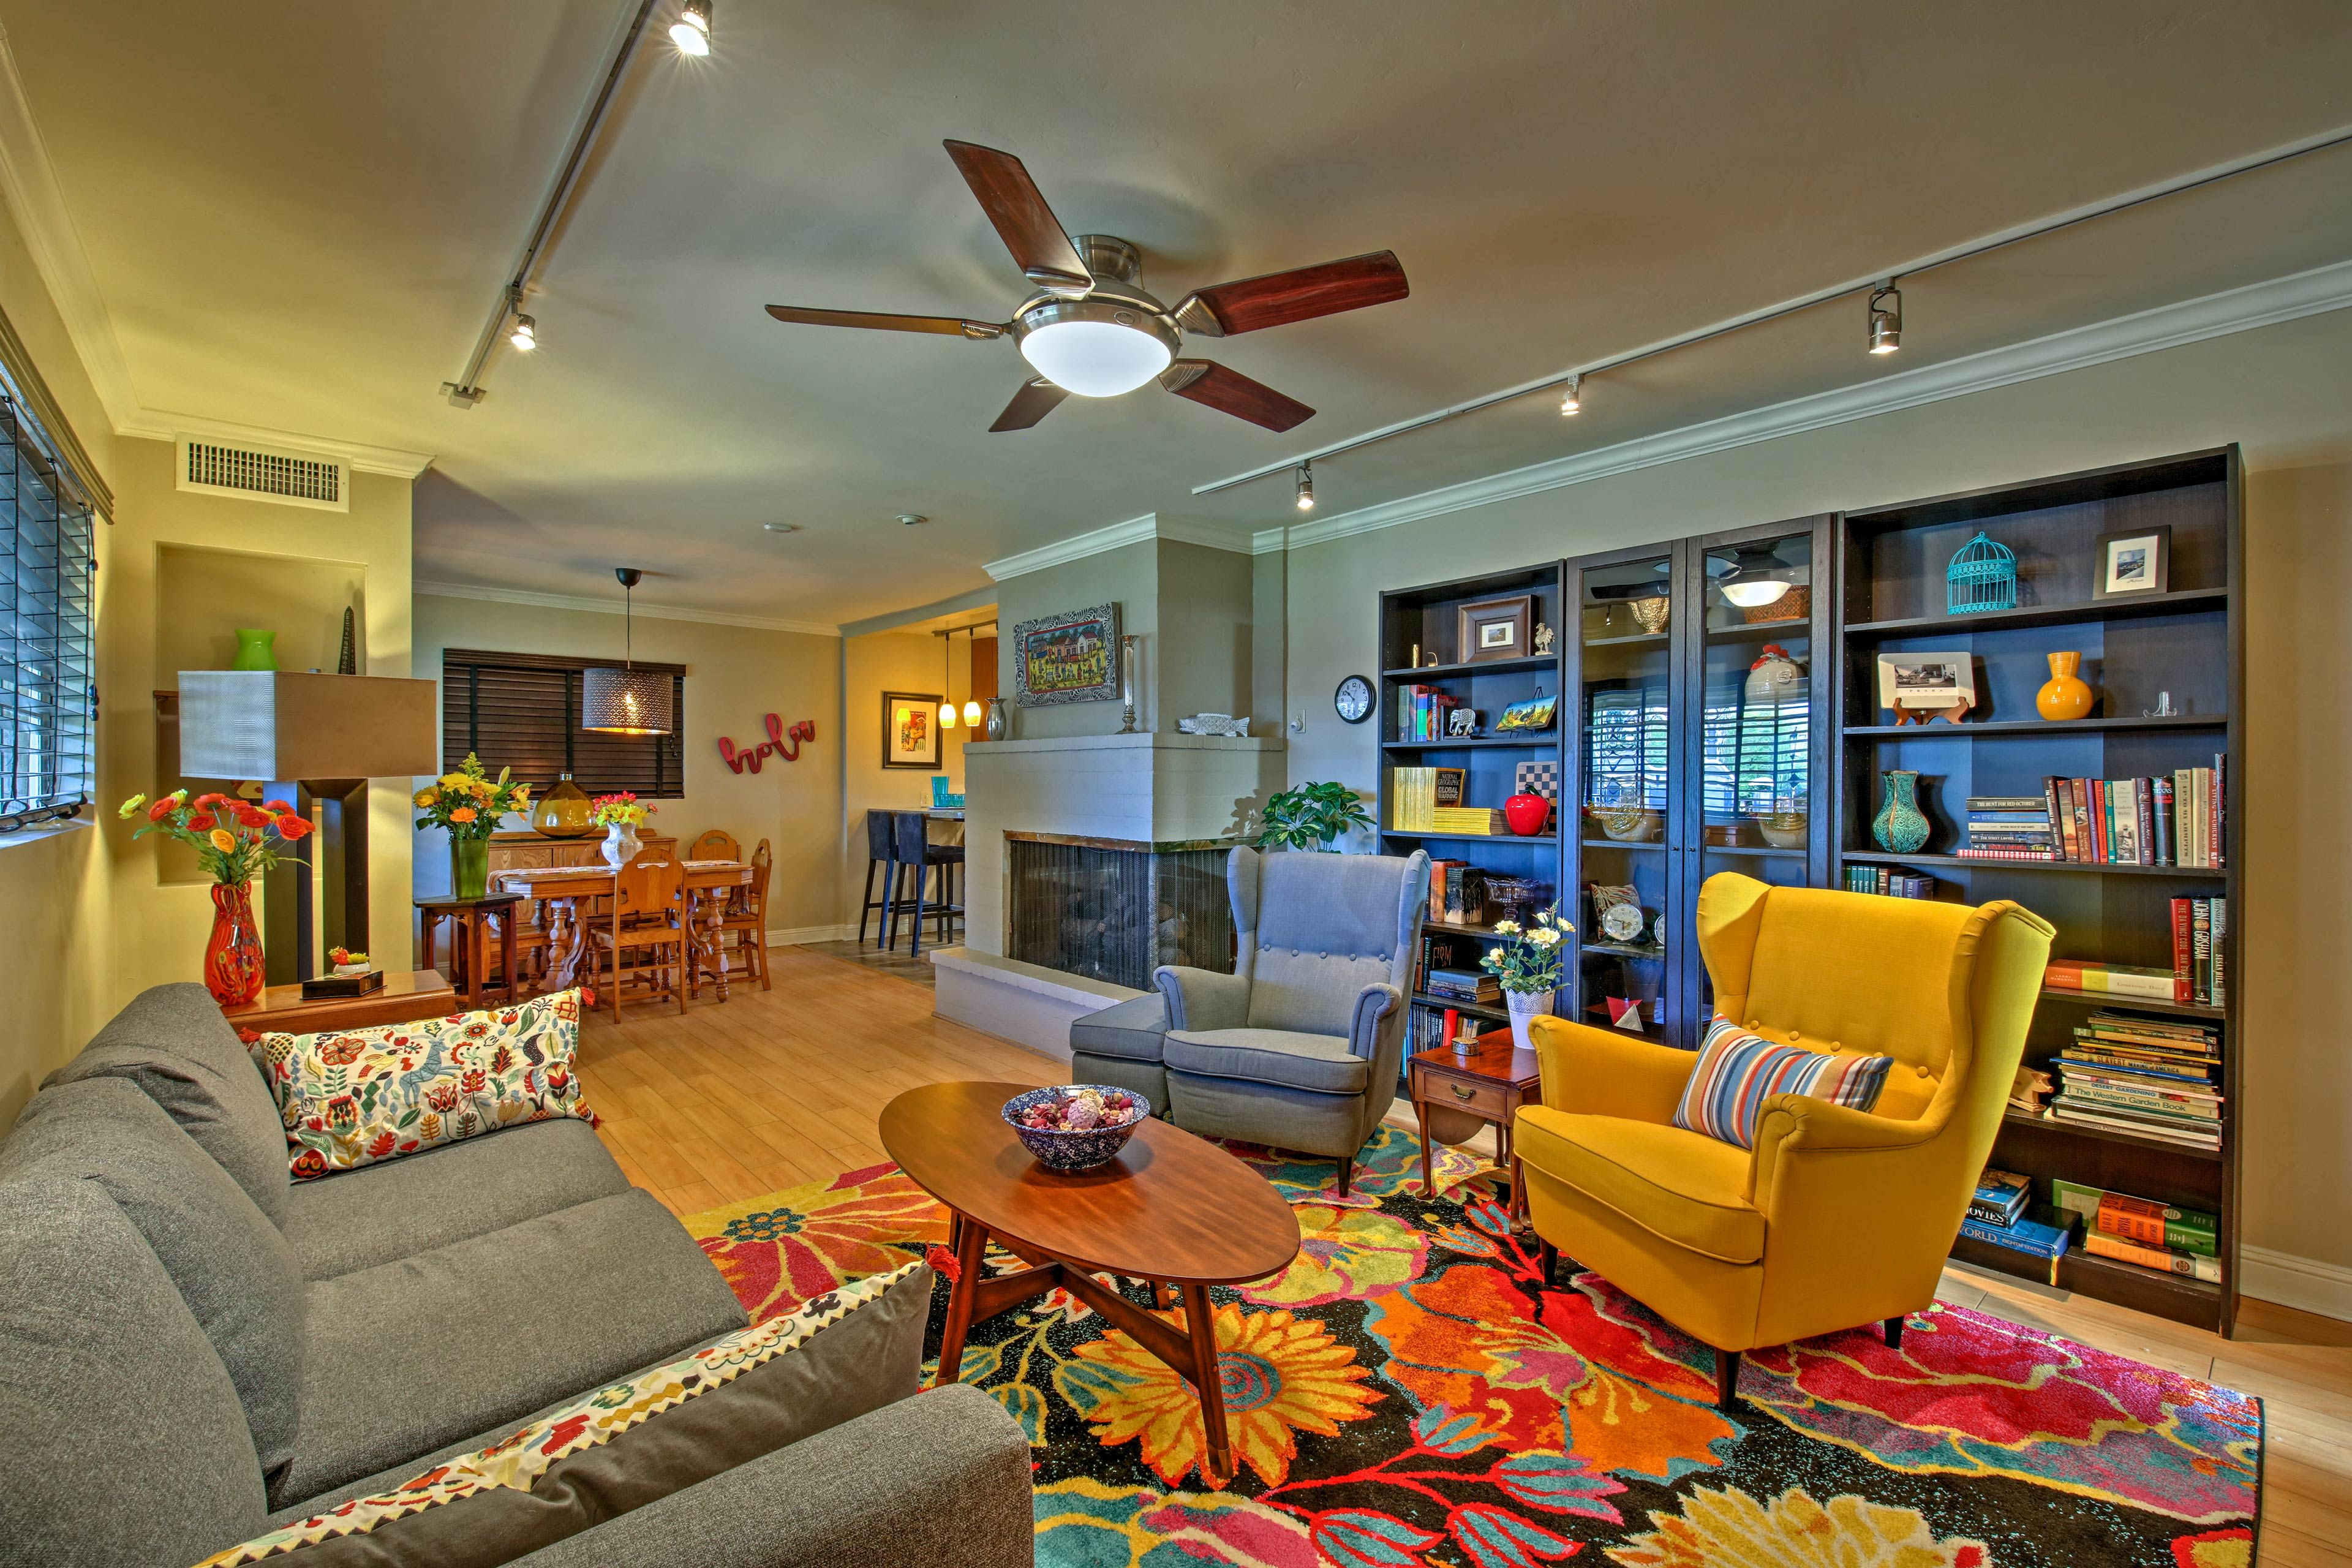 Escape to Phoenix and stay at this 4-bedroom, 2-bath vacation rental house!